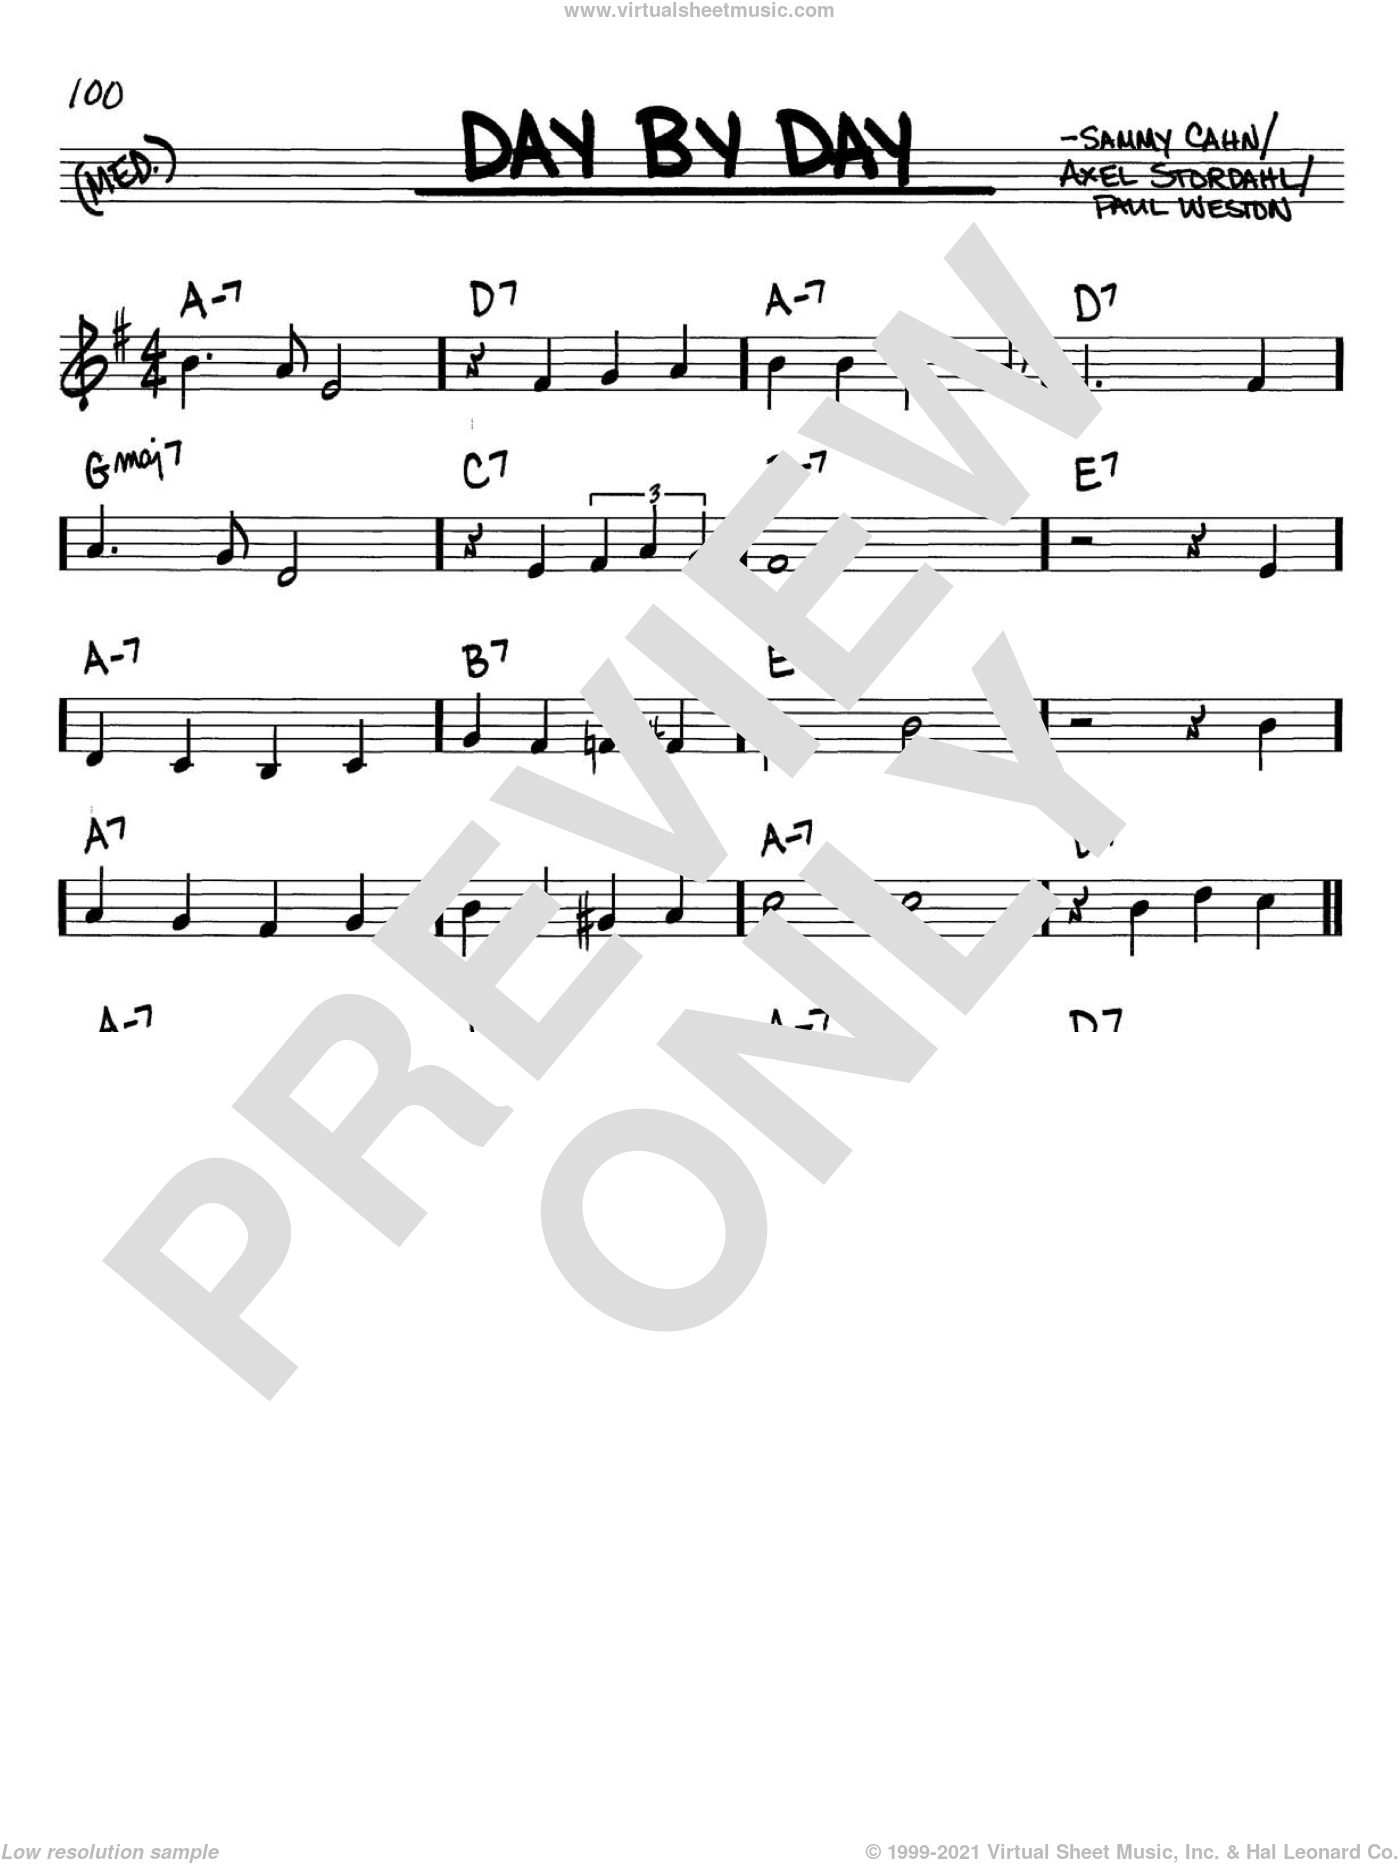 Day By Day sheet music for voice and other instruments (in C) by Sammy Cahn, Axel Stordahl and Paul Weston, intermediate skill level